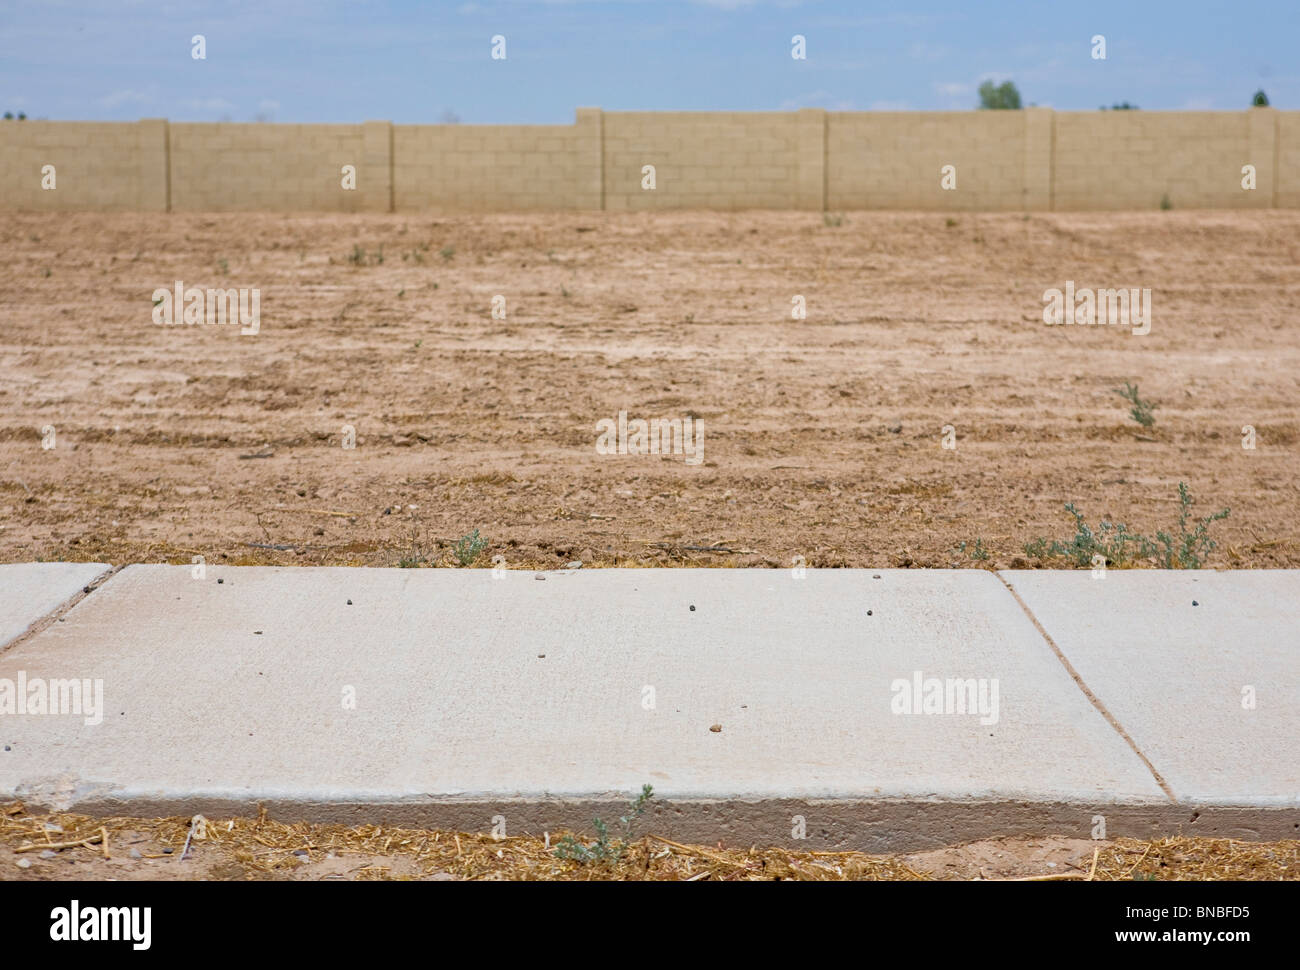 Unfinished and abandoned housing developments in the Phoenix, Arizona area.  - Stock Image